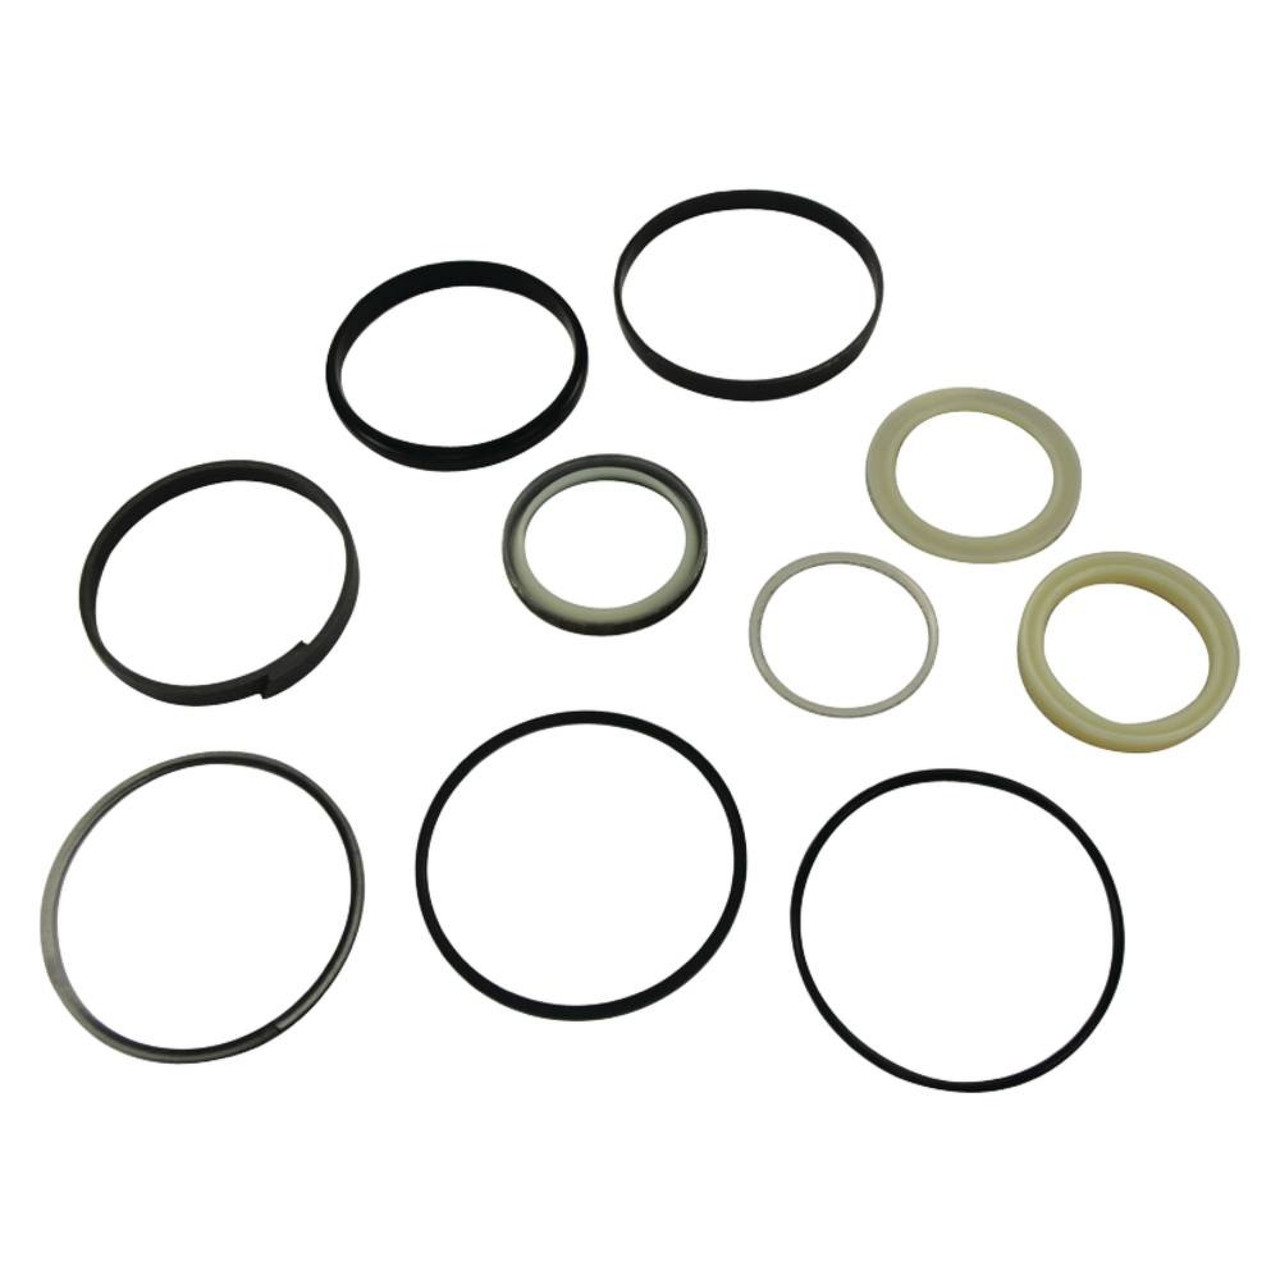 New Hydraulic Cylinder Seal Kit for Ford Tractor 84209920